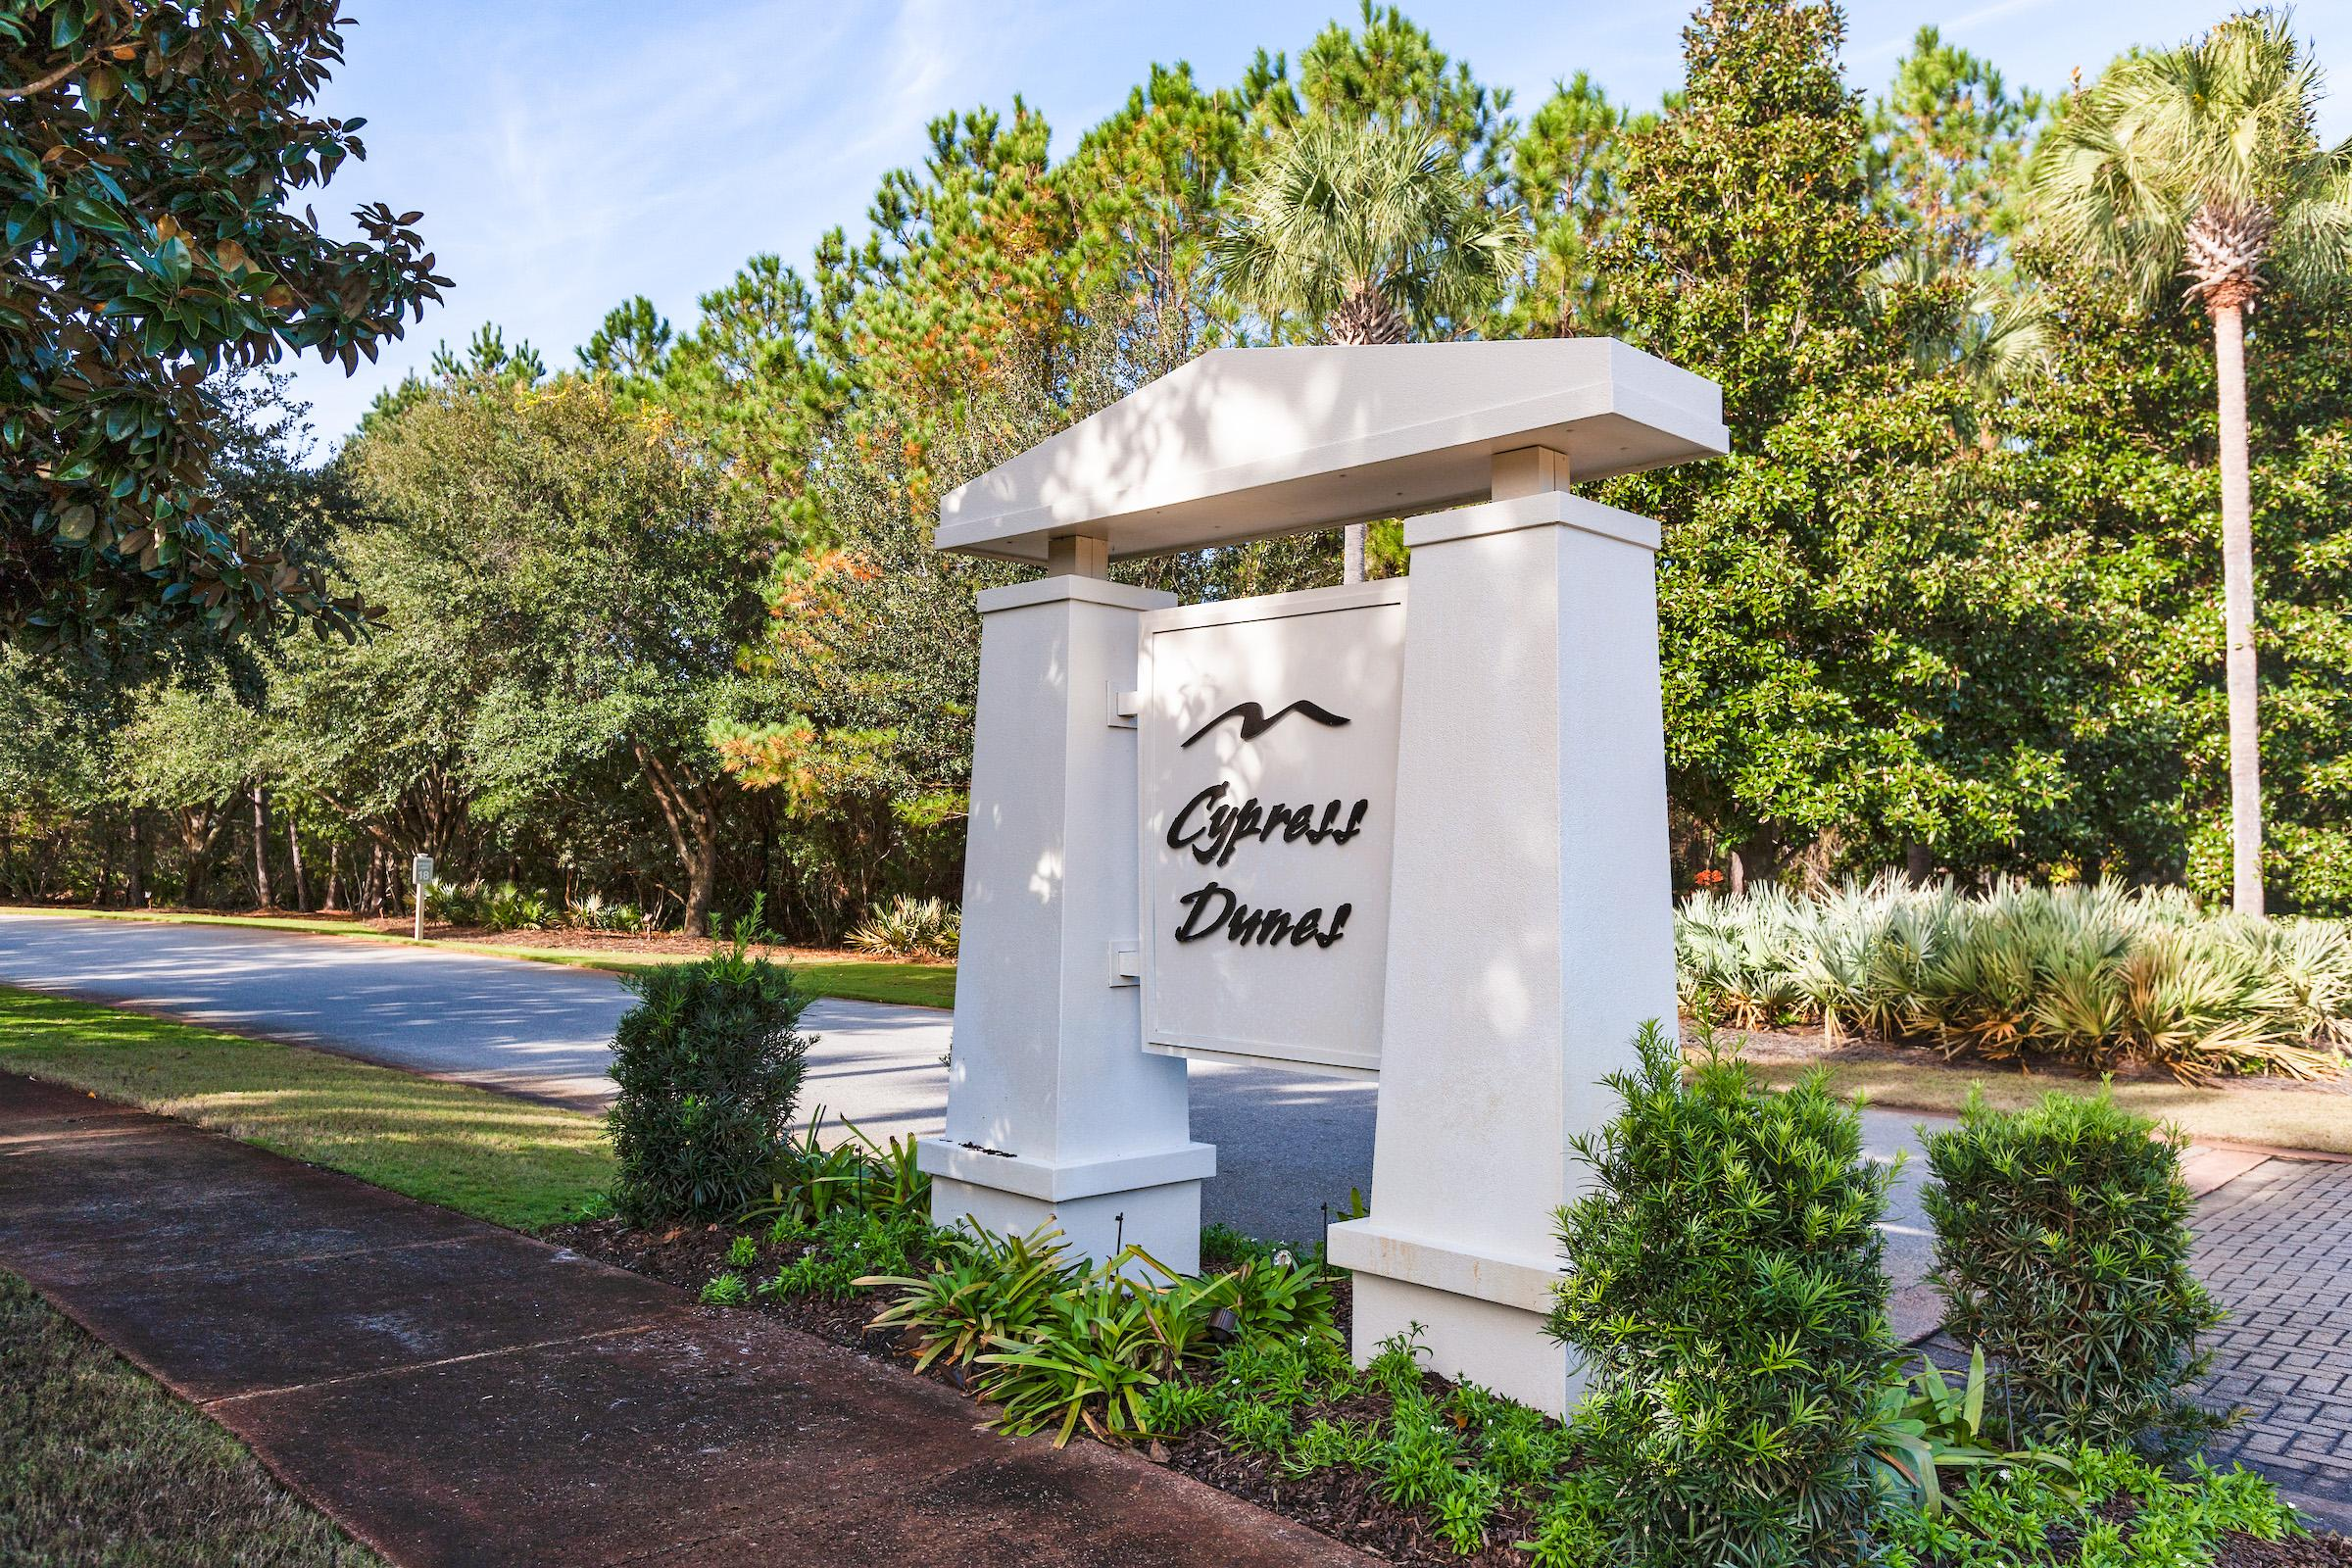 Your rental is located in the luxurious coastal community of Cypress Dunes.